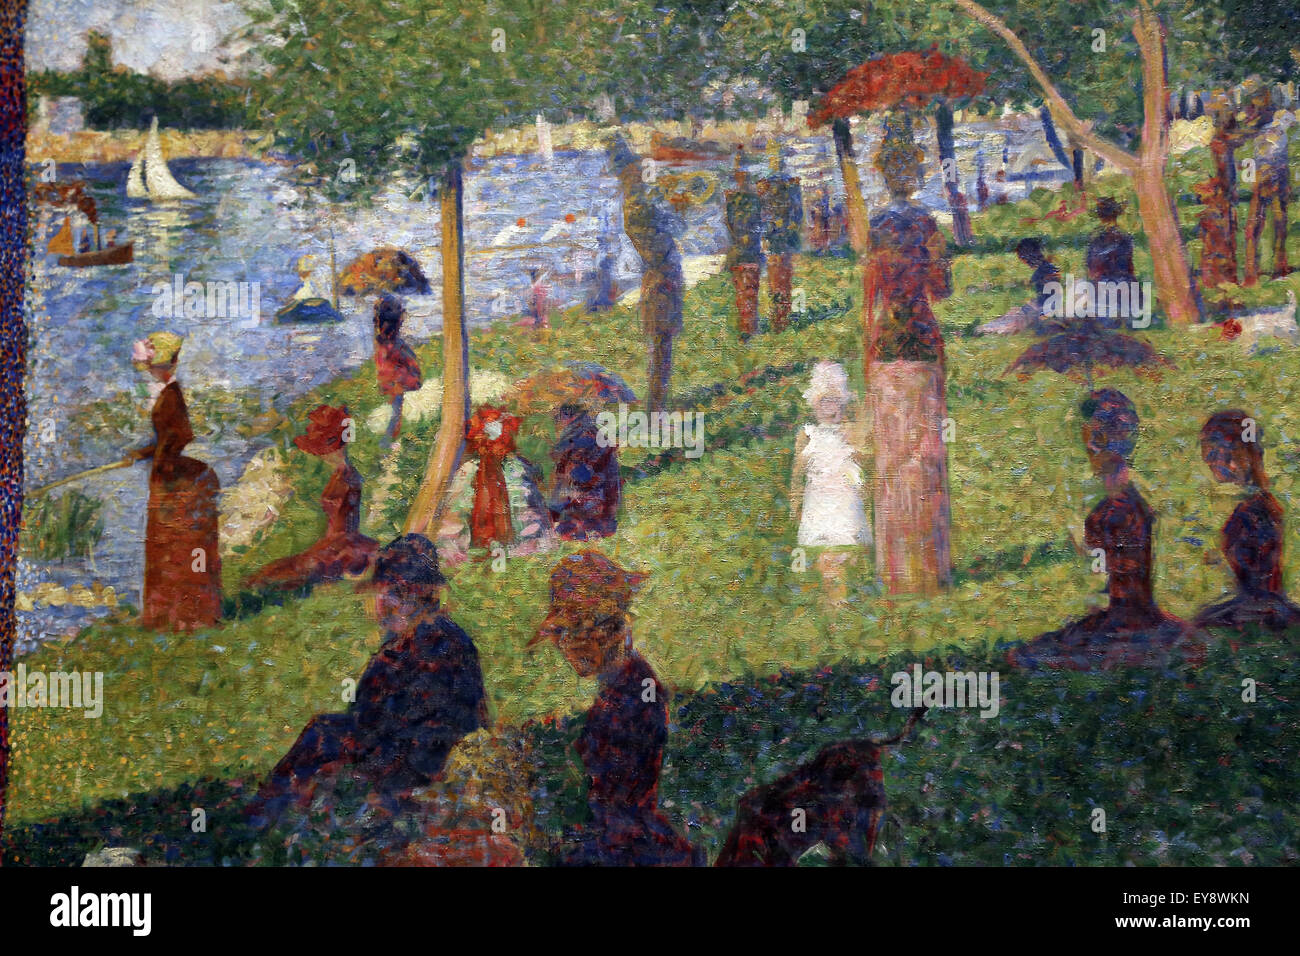 George Seurat (1859-1891). French painter. Study for 'A Sunday on La Grande Jatte', 1884. Oil on canvas. - Stock Image